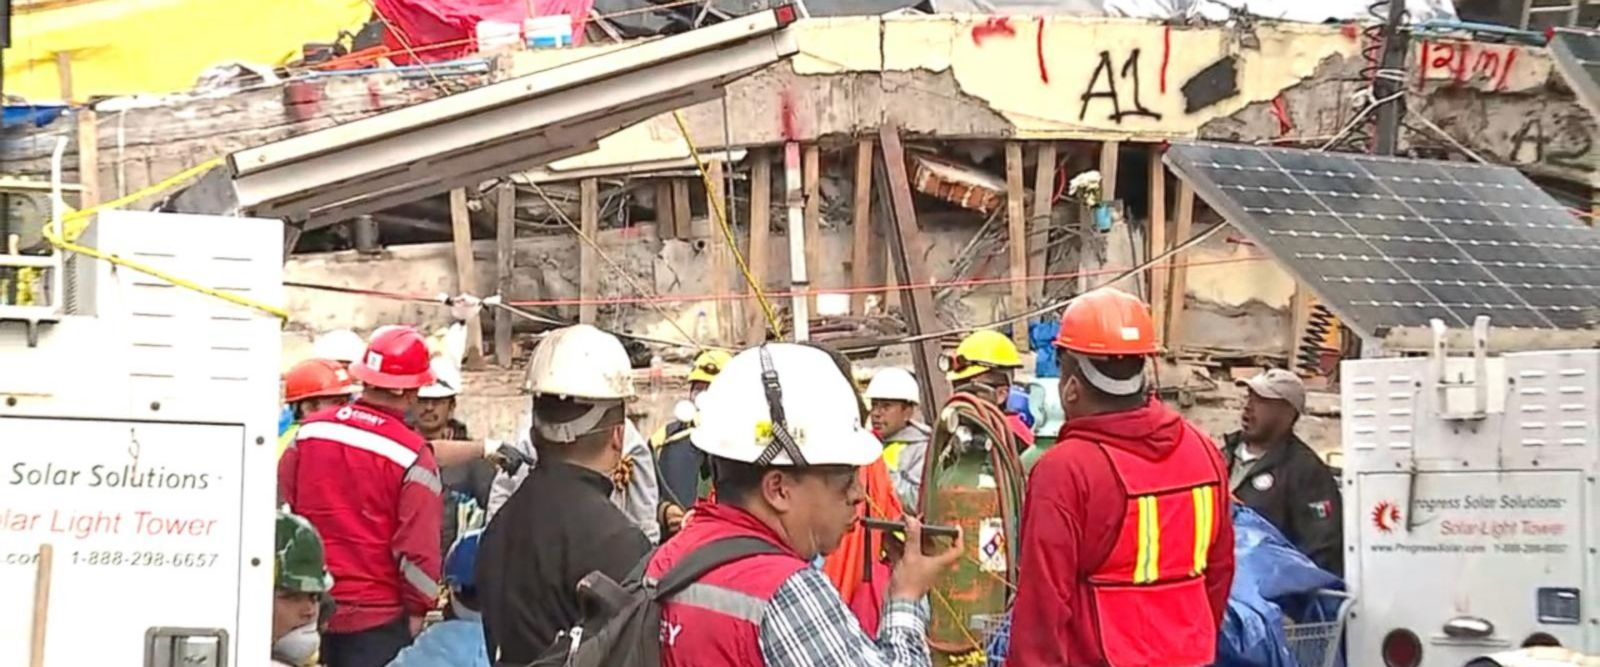 VIDEO: Rescue efforts resume for any survivors of collapsed school in Mexico